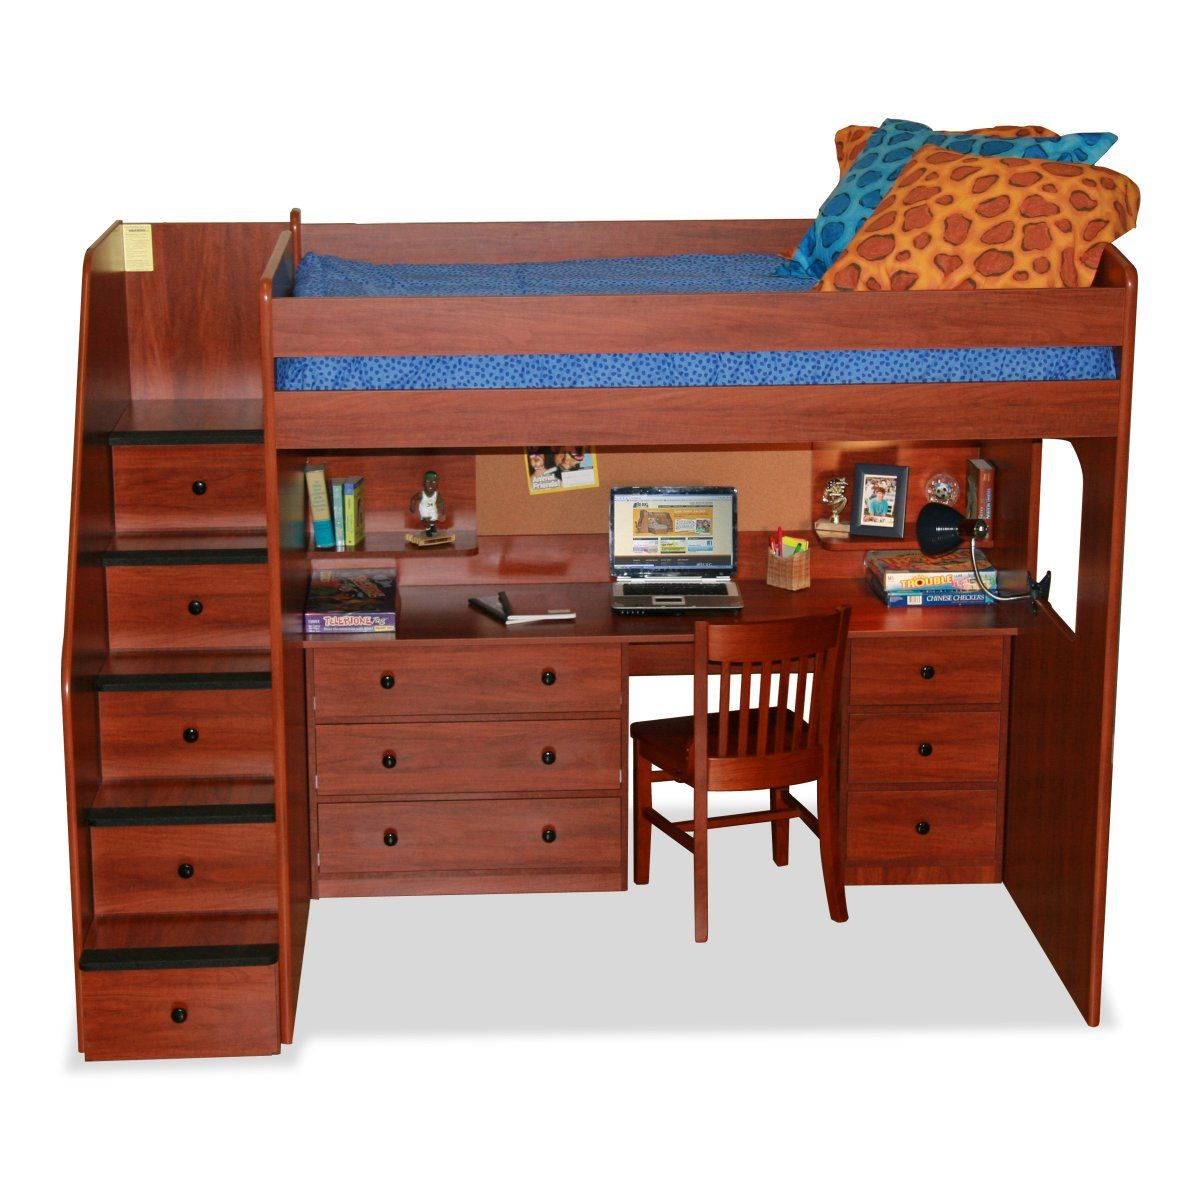 slim design full size loft bed with desk and shelving racks officeguest room pinterest shelving racks loft beds and build a loft bed bed and desk combo furniture